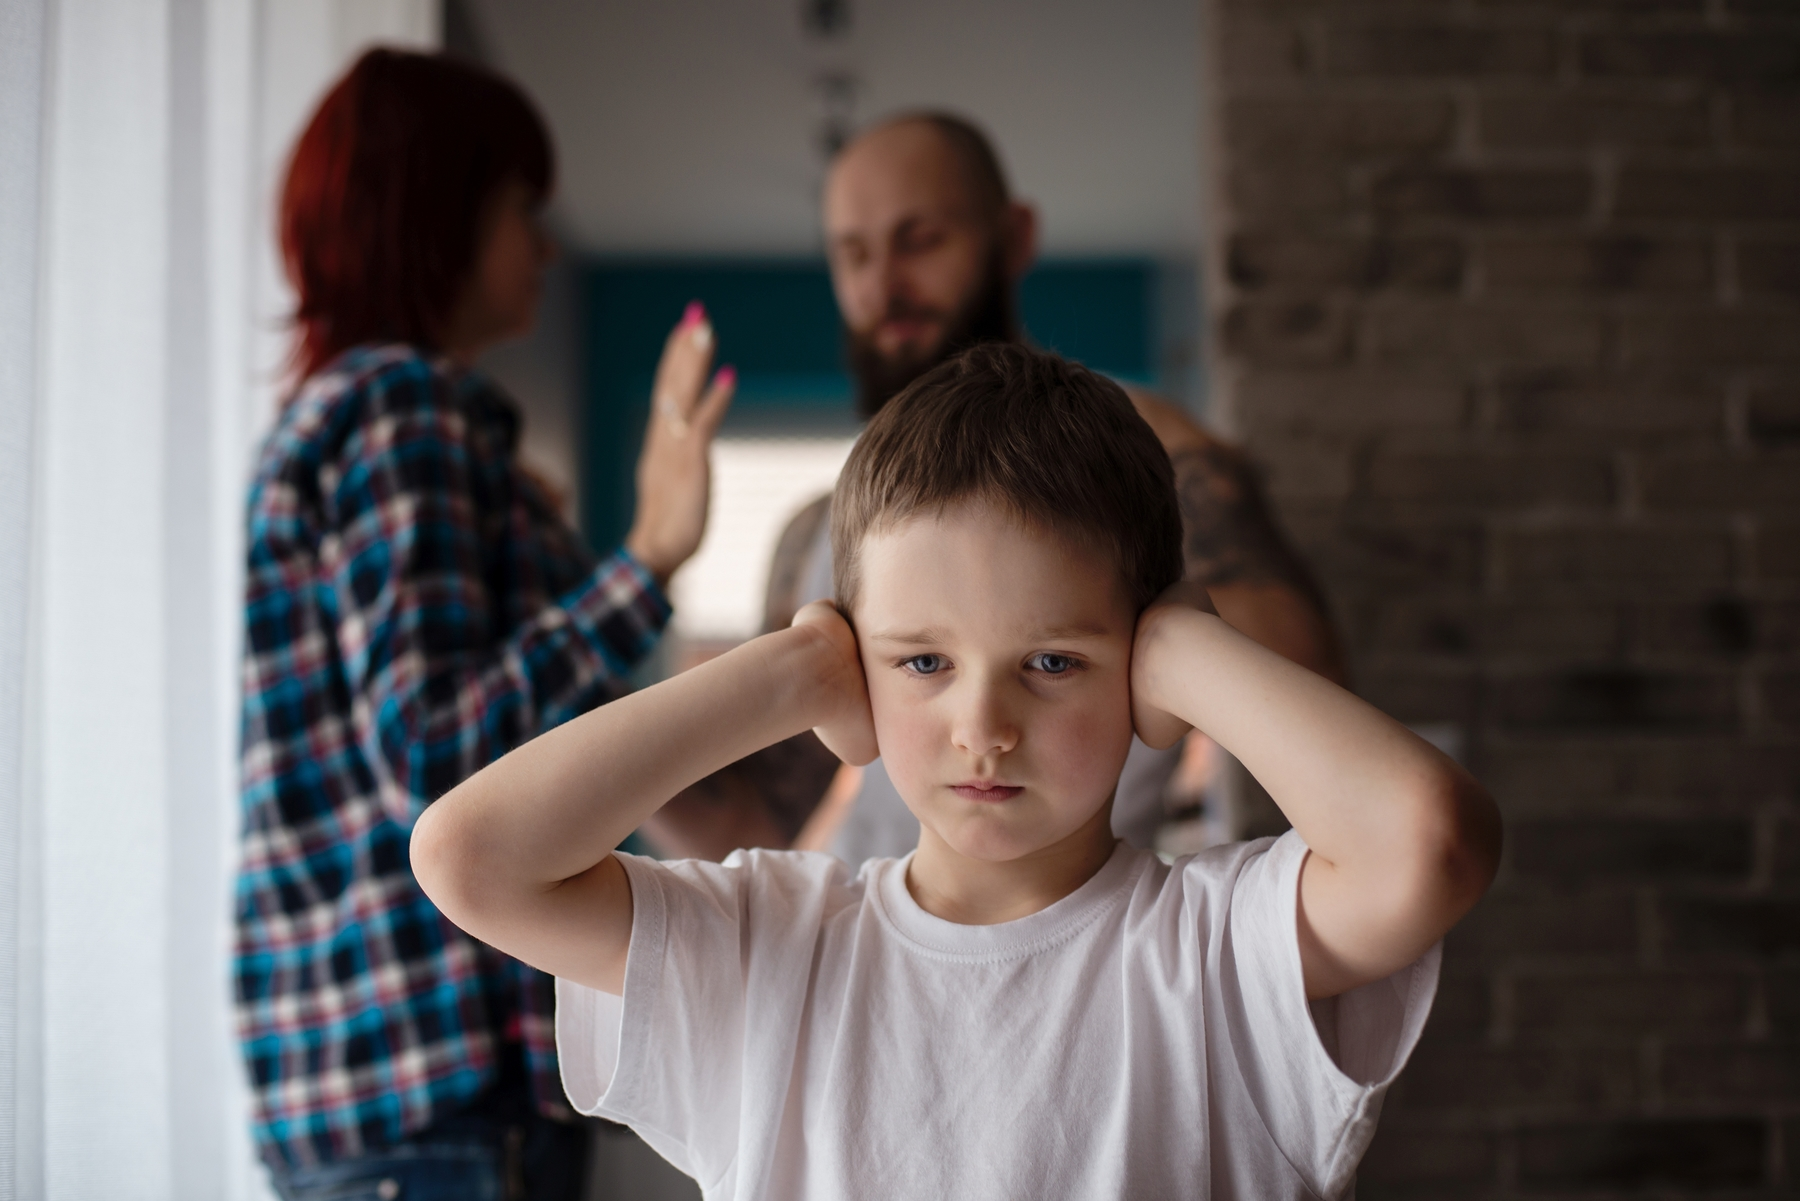 Divorce, the Children, and the Questions They Want to Ask